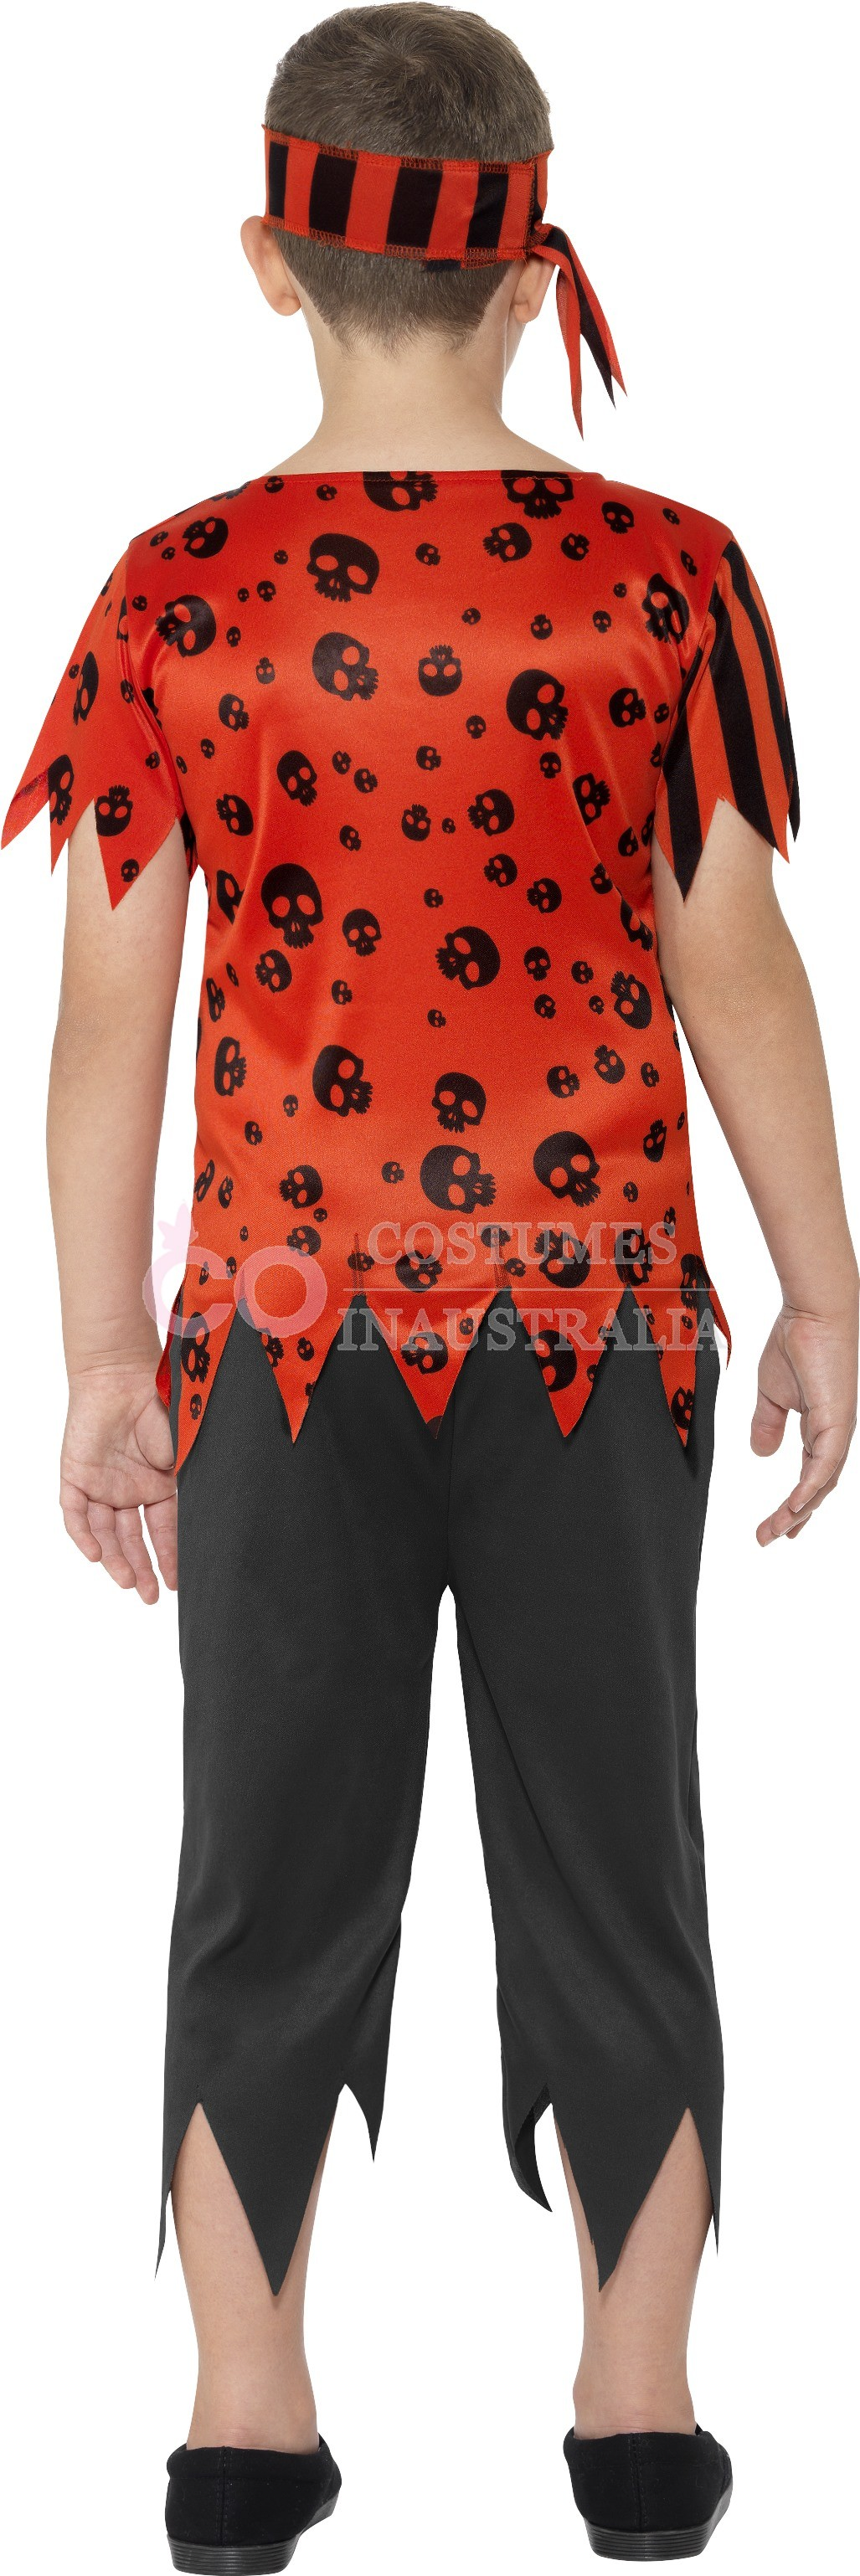 Boys Jolly Pirate Costume Child Caribbean Buccaneer Fancy Dress Book Week Outfit